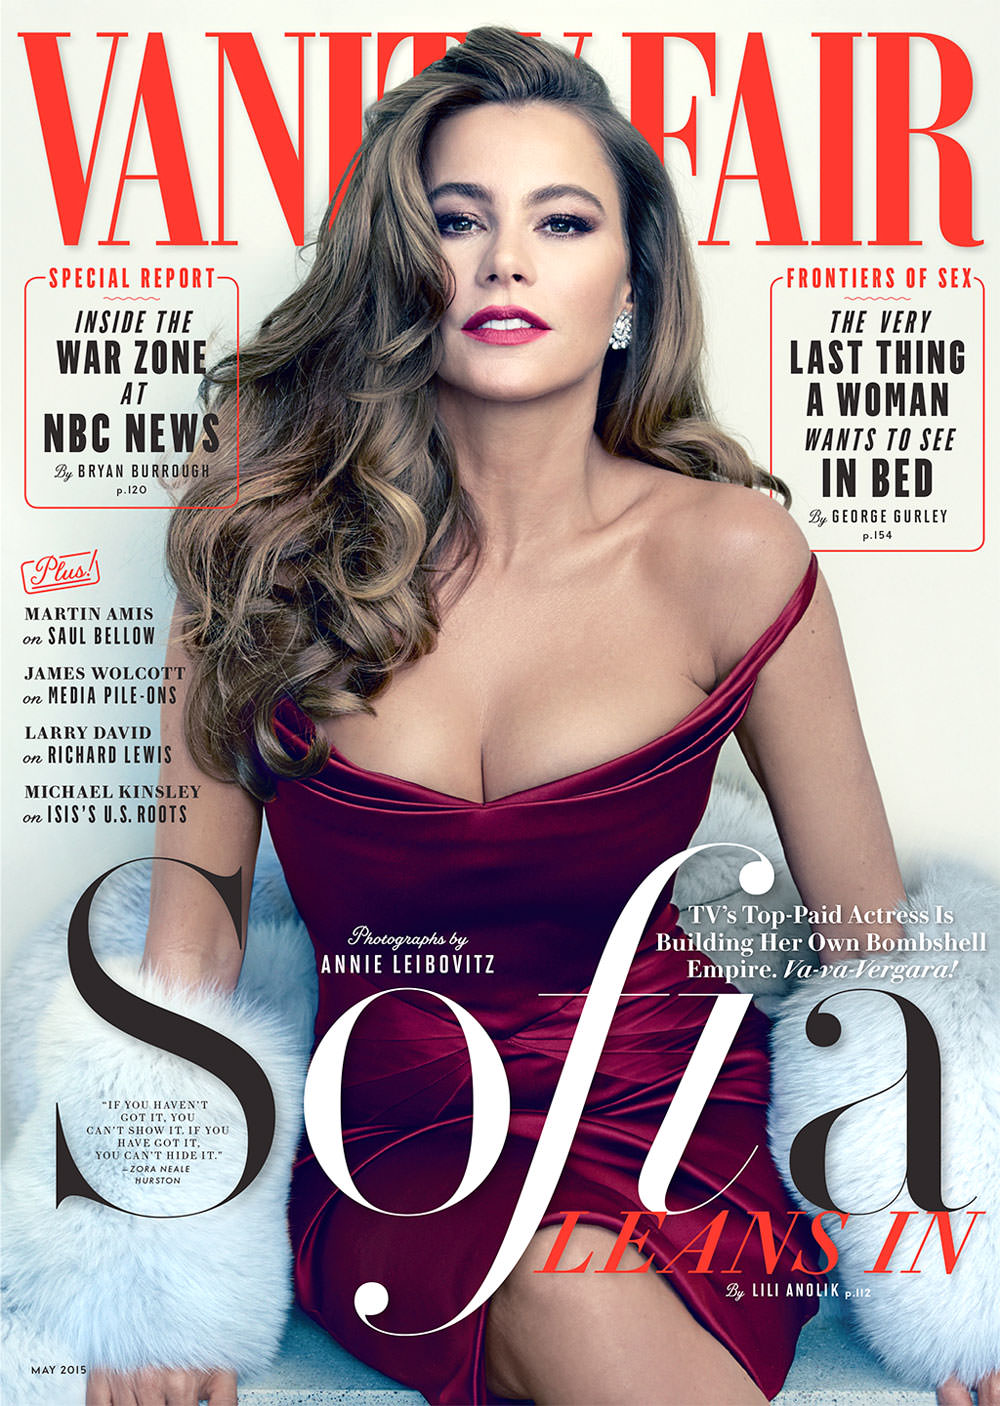 Sofia-Vergara-Vanity-Fair-Magazine-May-2015-Issue-Tom-Lorenzo-Site-TLO-1